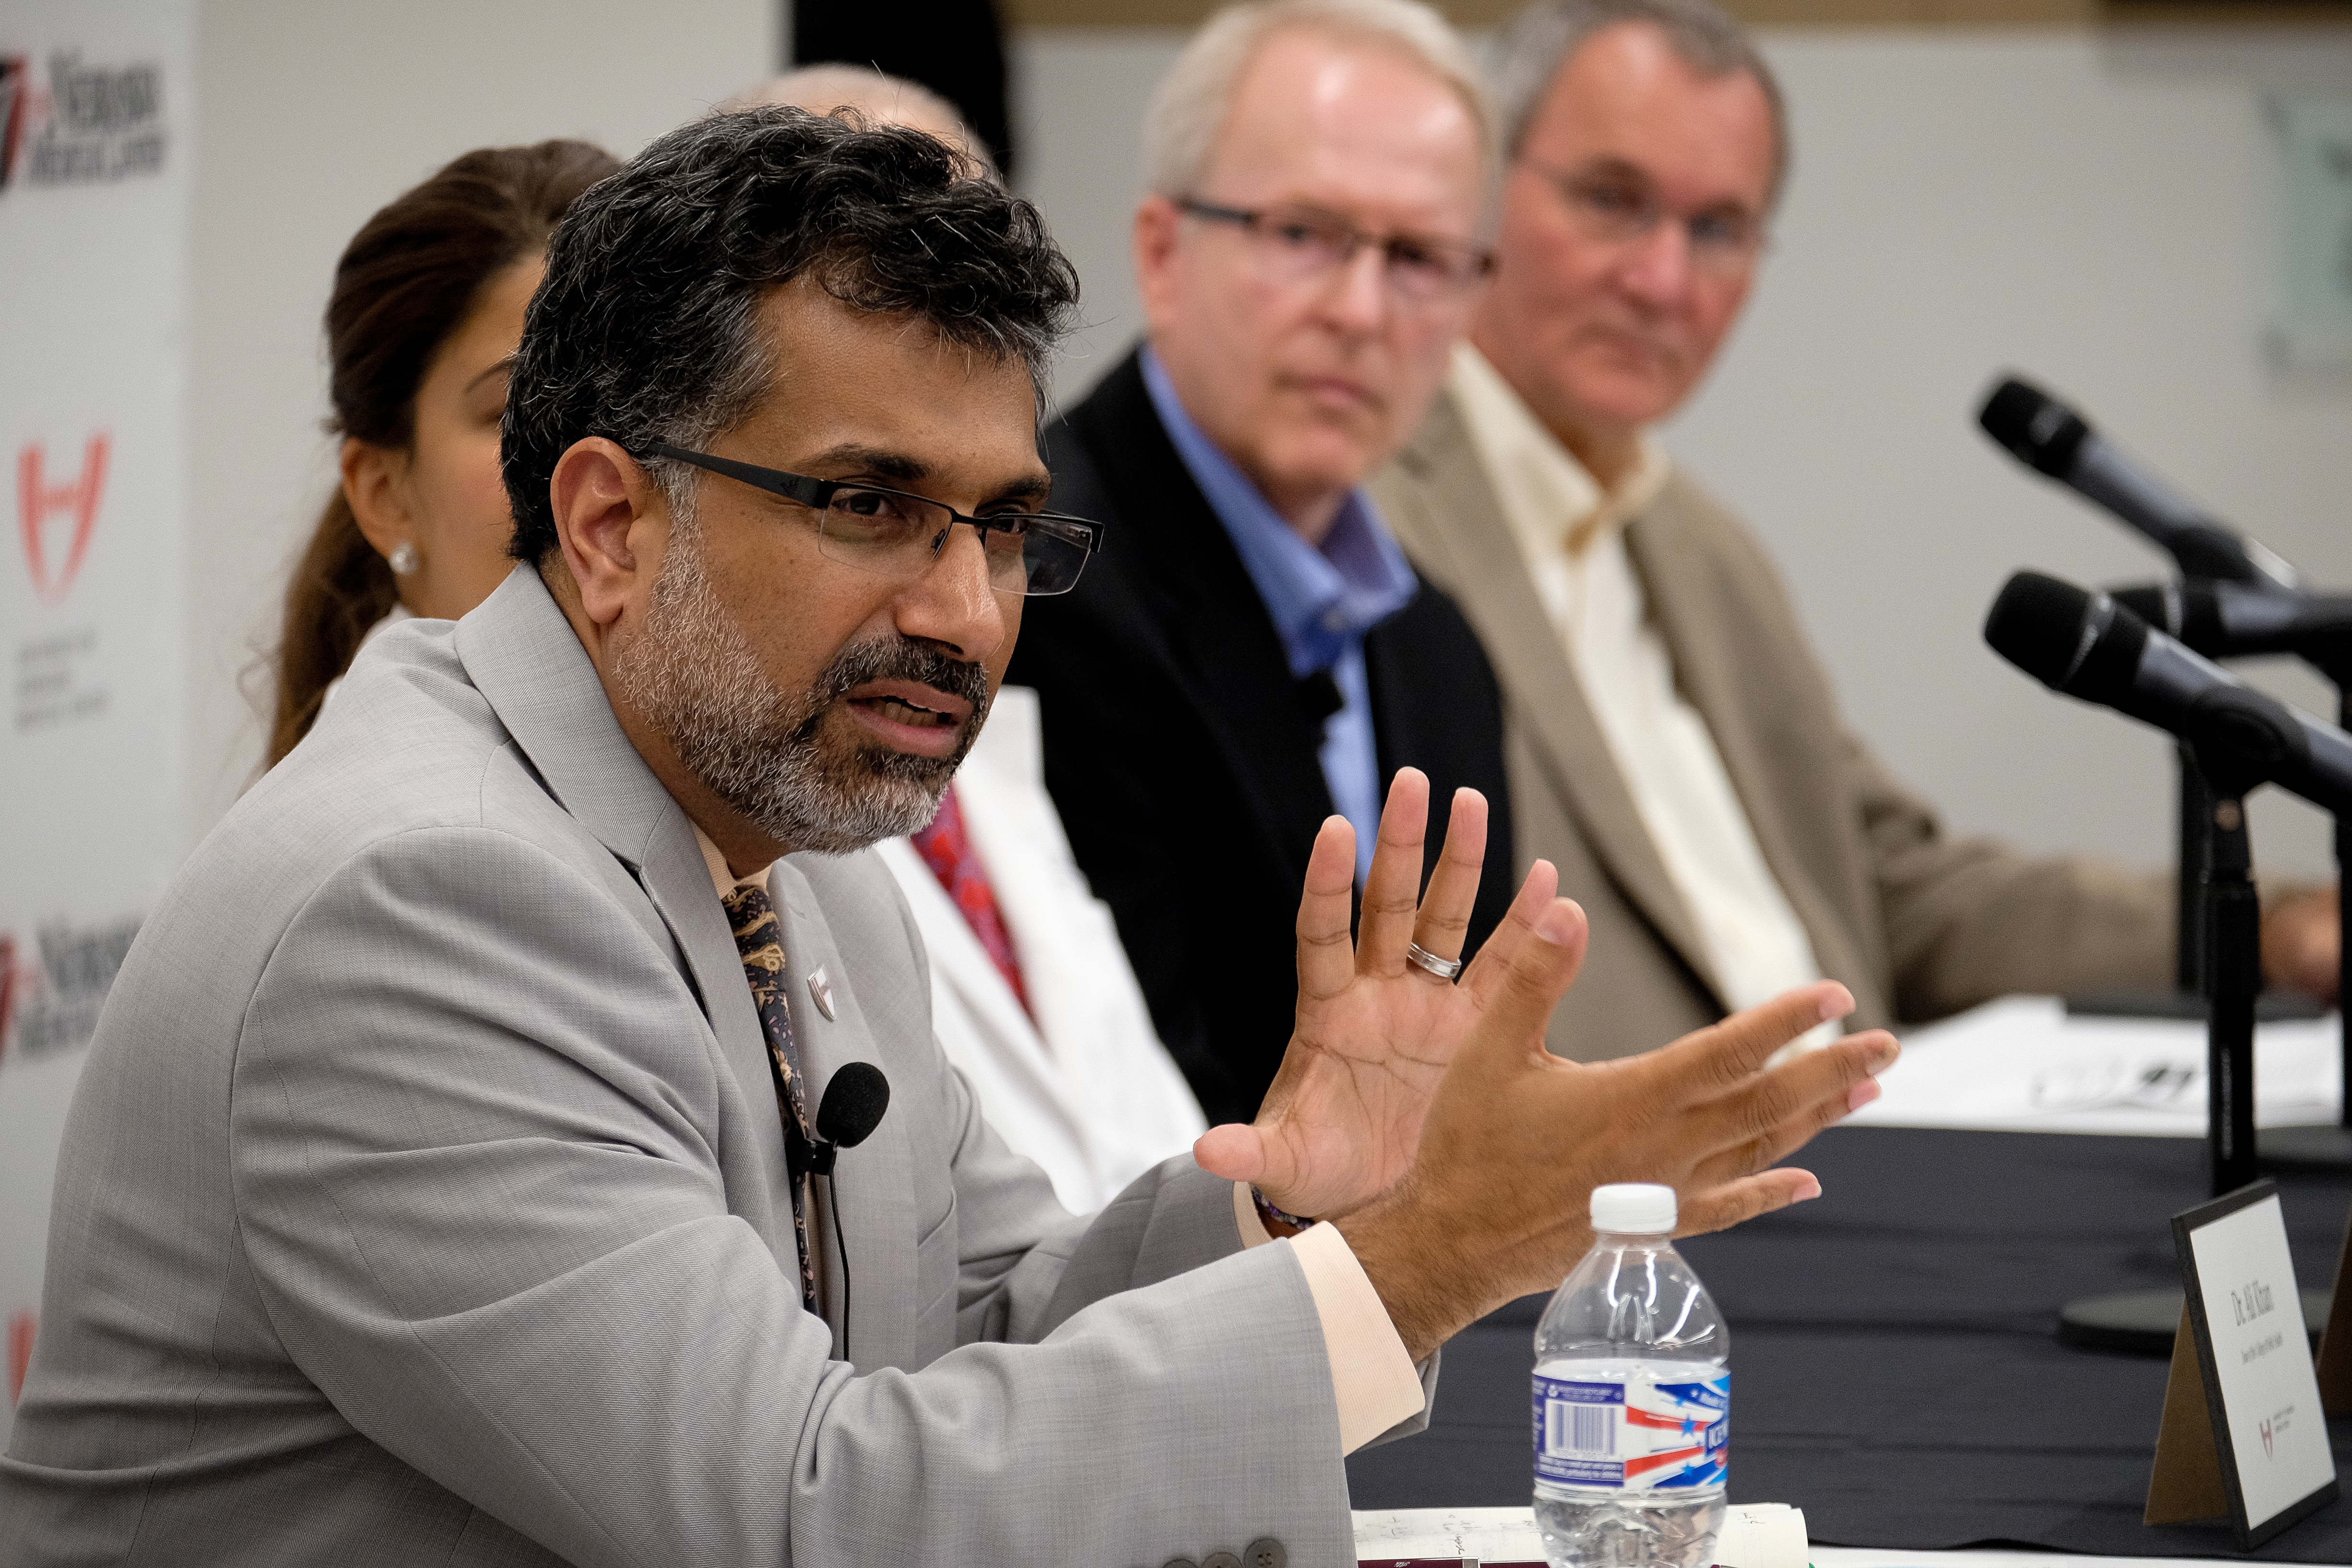 Ali S. Khan M.D. speaks to members of the media at the University of Nebraska Medical Center about the arrival of ebola patient Rick Sacra.